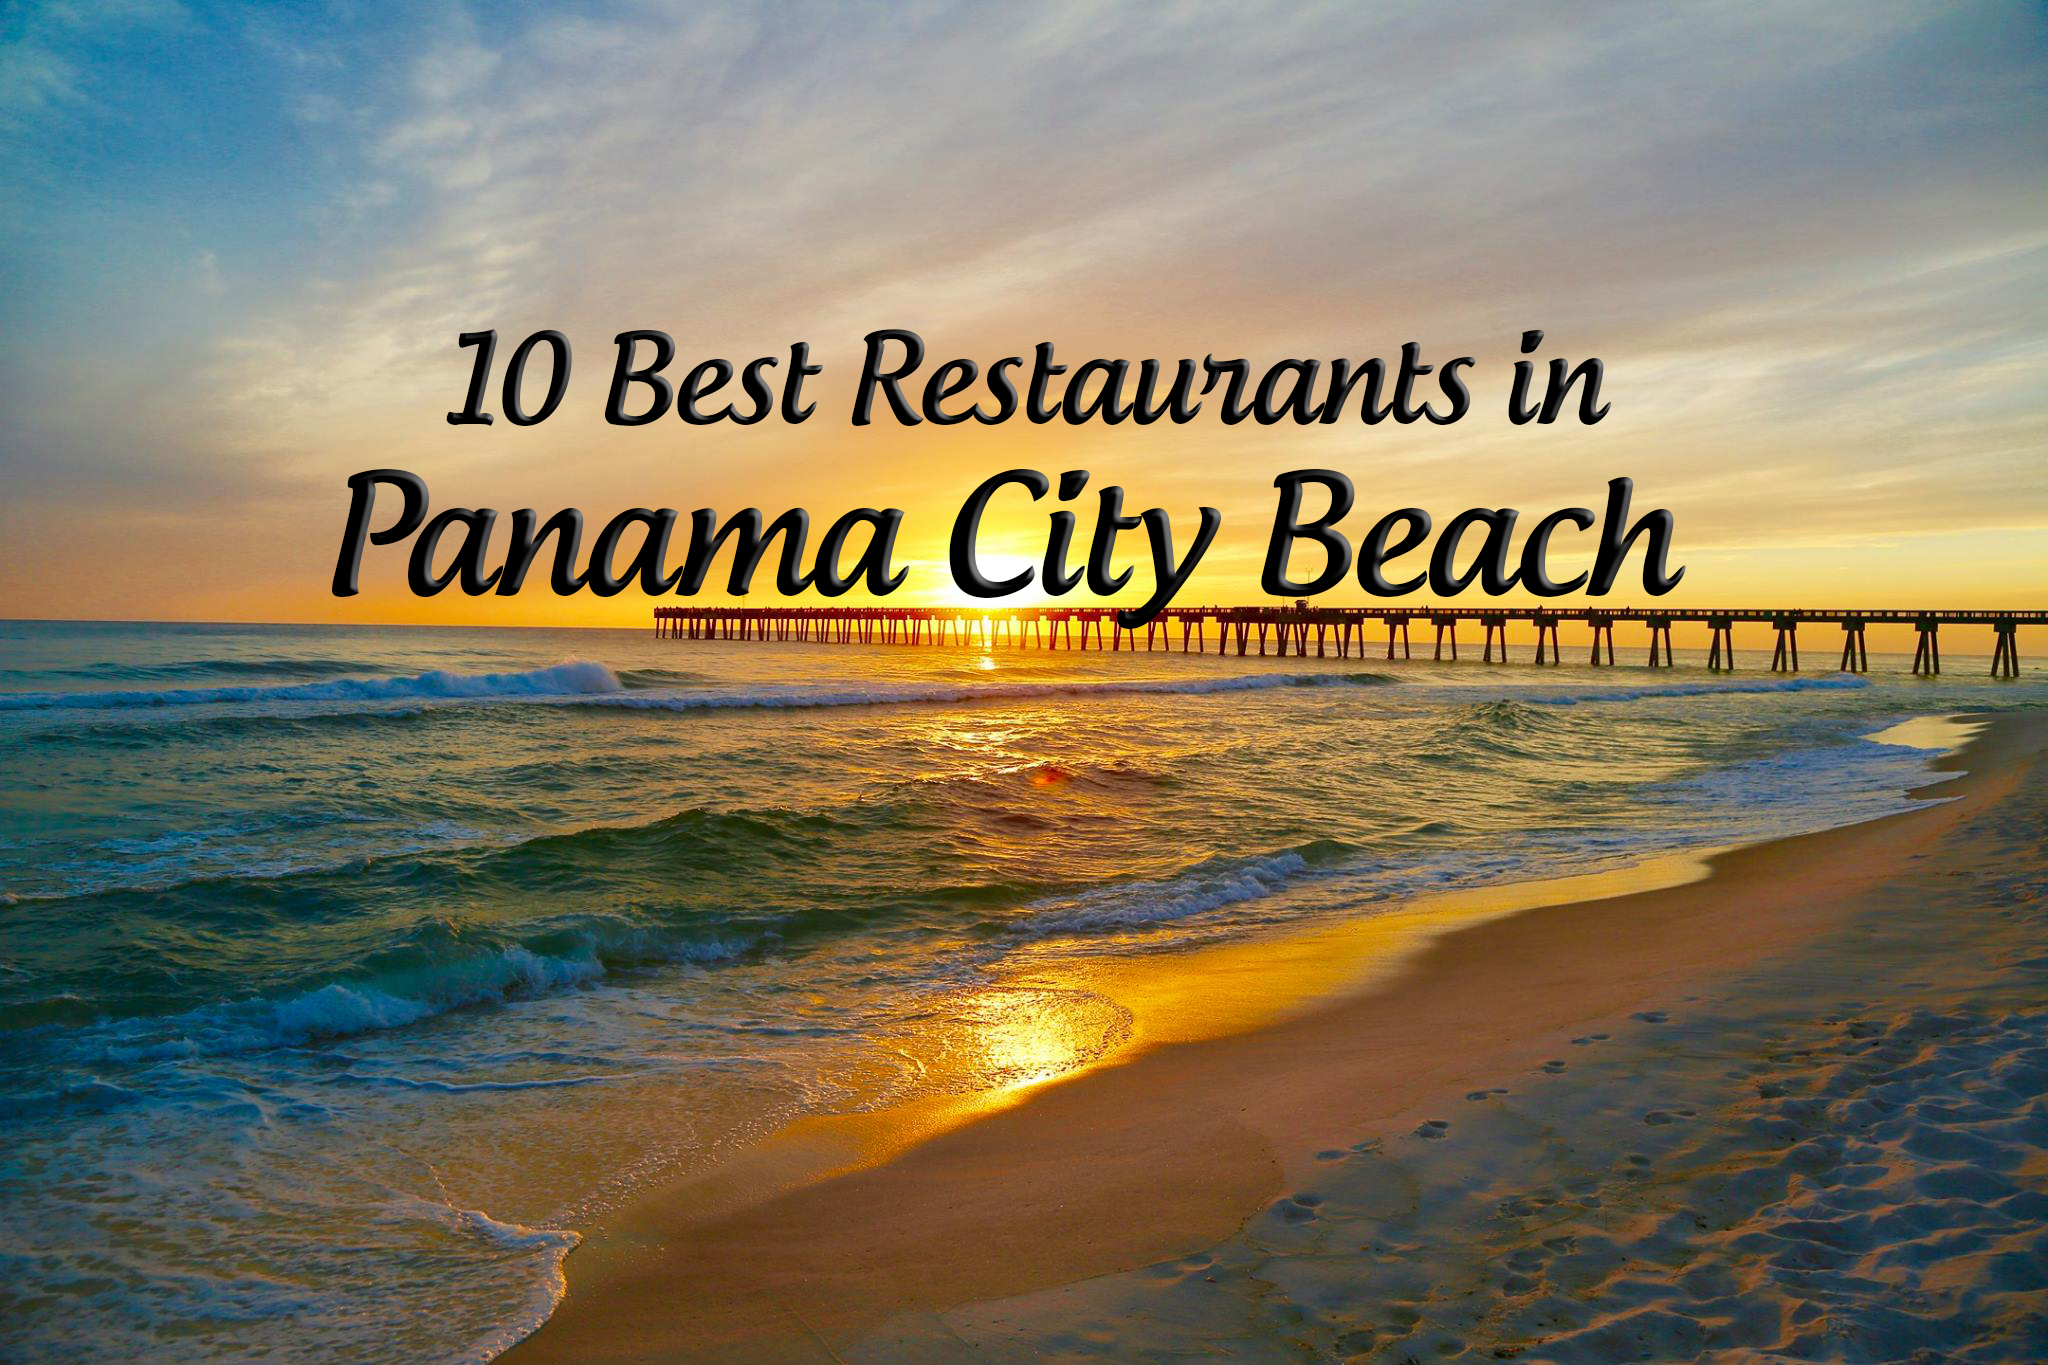 Restaurants Open On Christmas Day 2020 Near Panama City Fl 10 Best Restaurants in Panama City Beach, FL